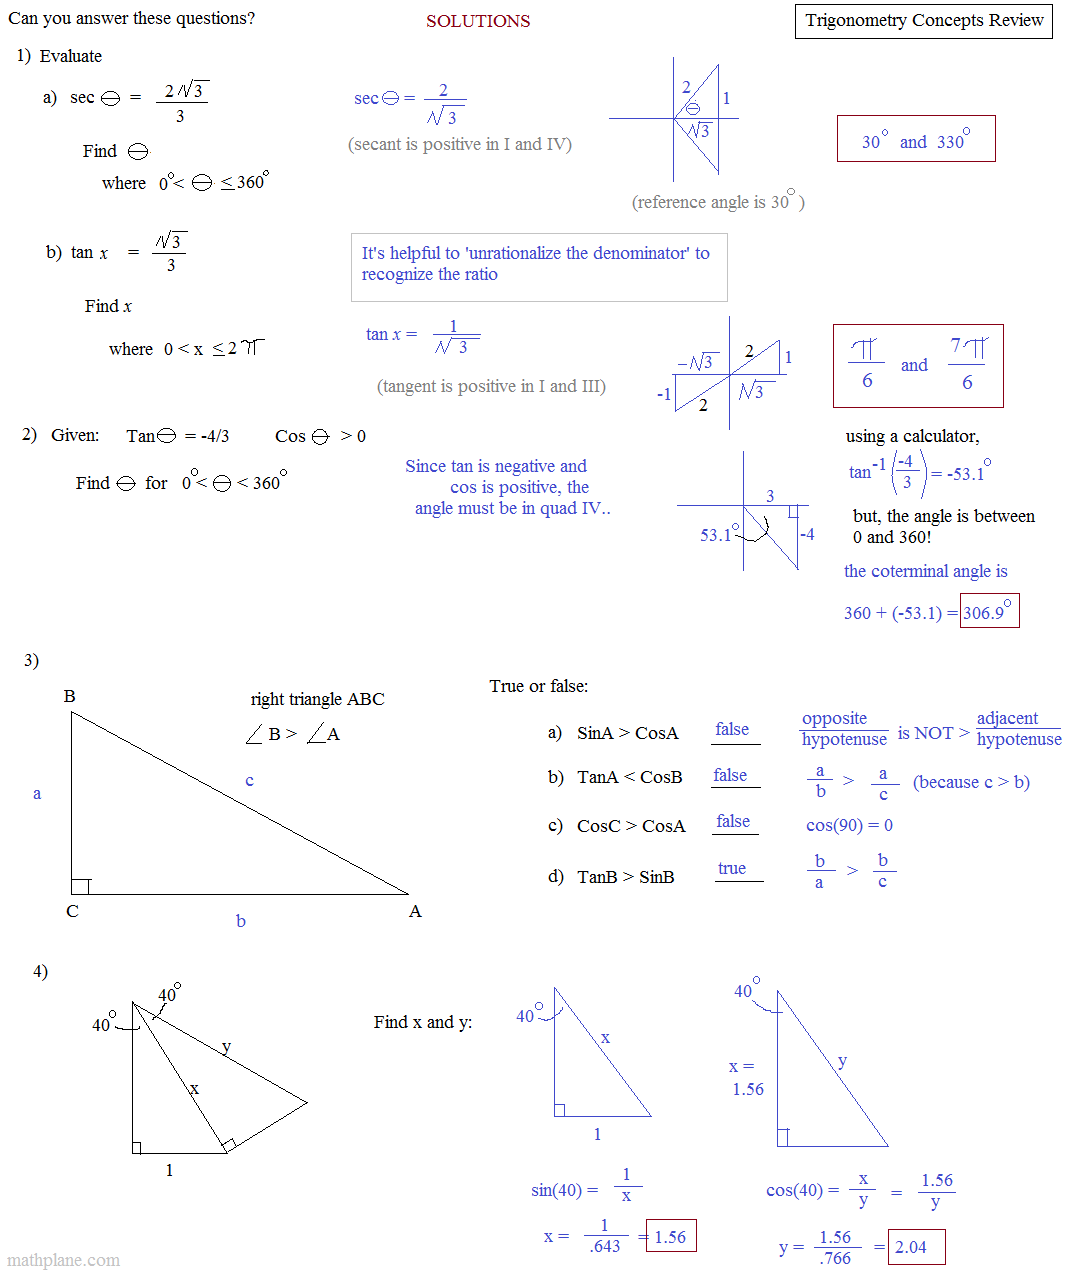 Math Plane Trigonometry Honors Review 3 Trigonometry Concept Review This Or That Questions [ 1277 x 1074 Pixel ]